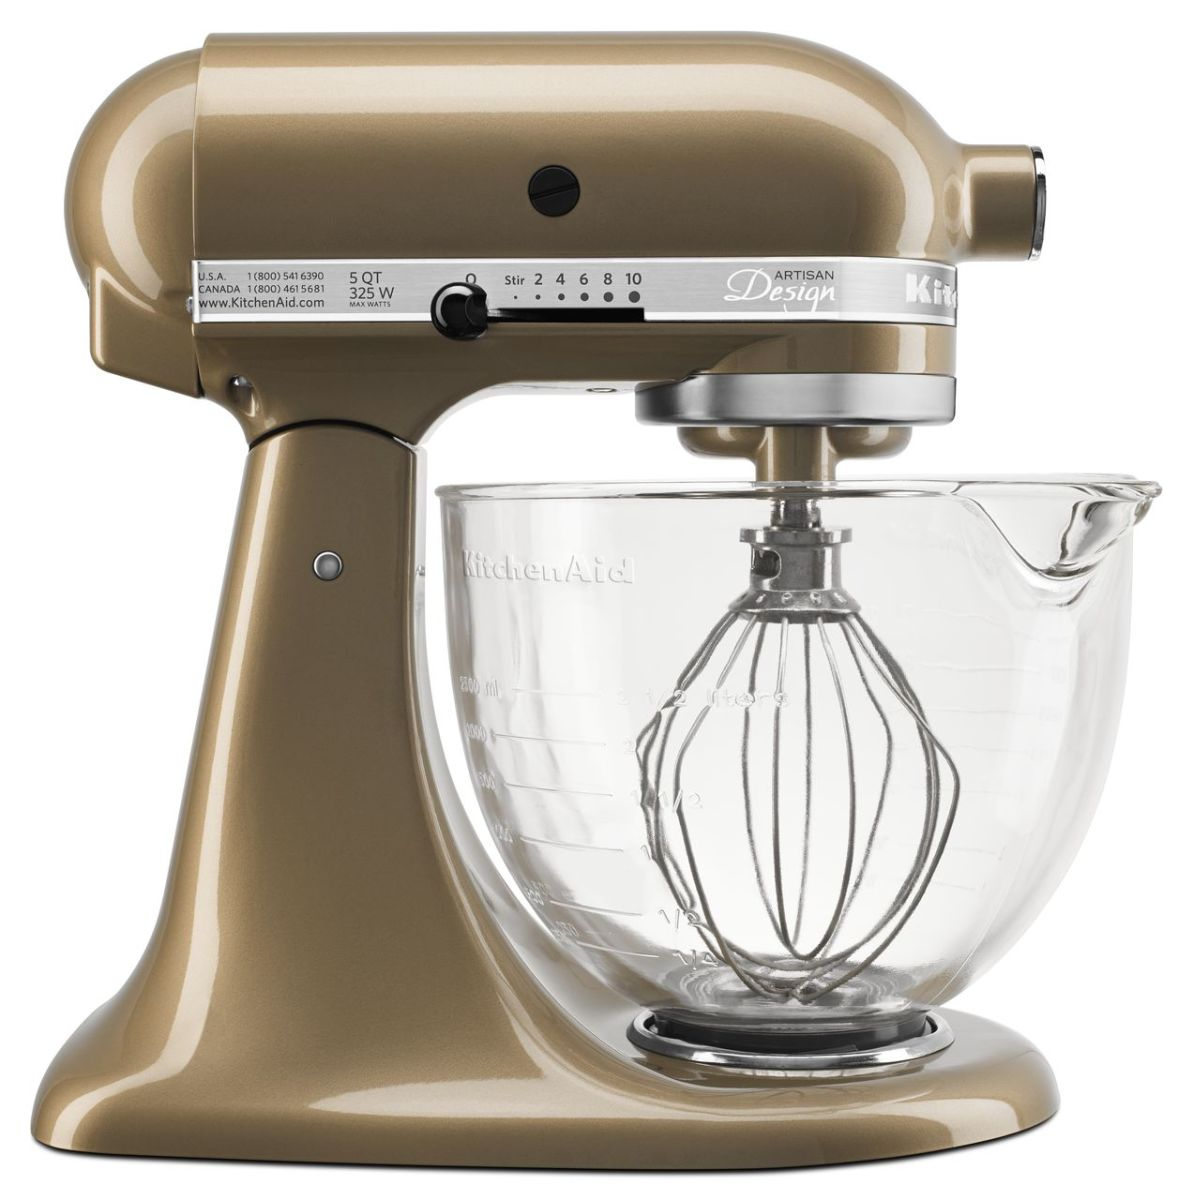 The KitchenAid® Artisan® Design Series Stand Mixer is a useful and